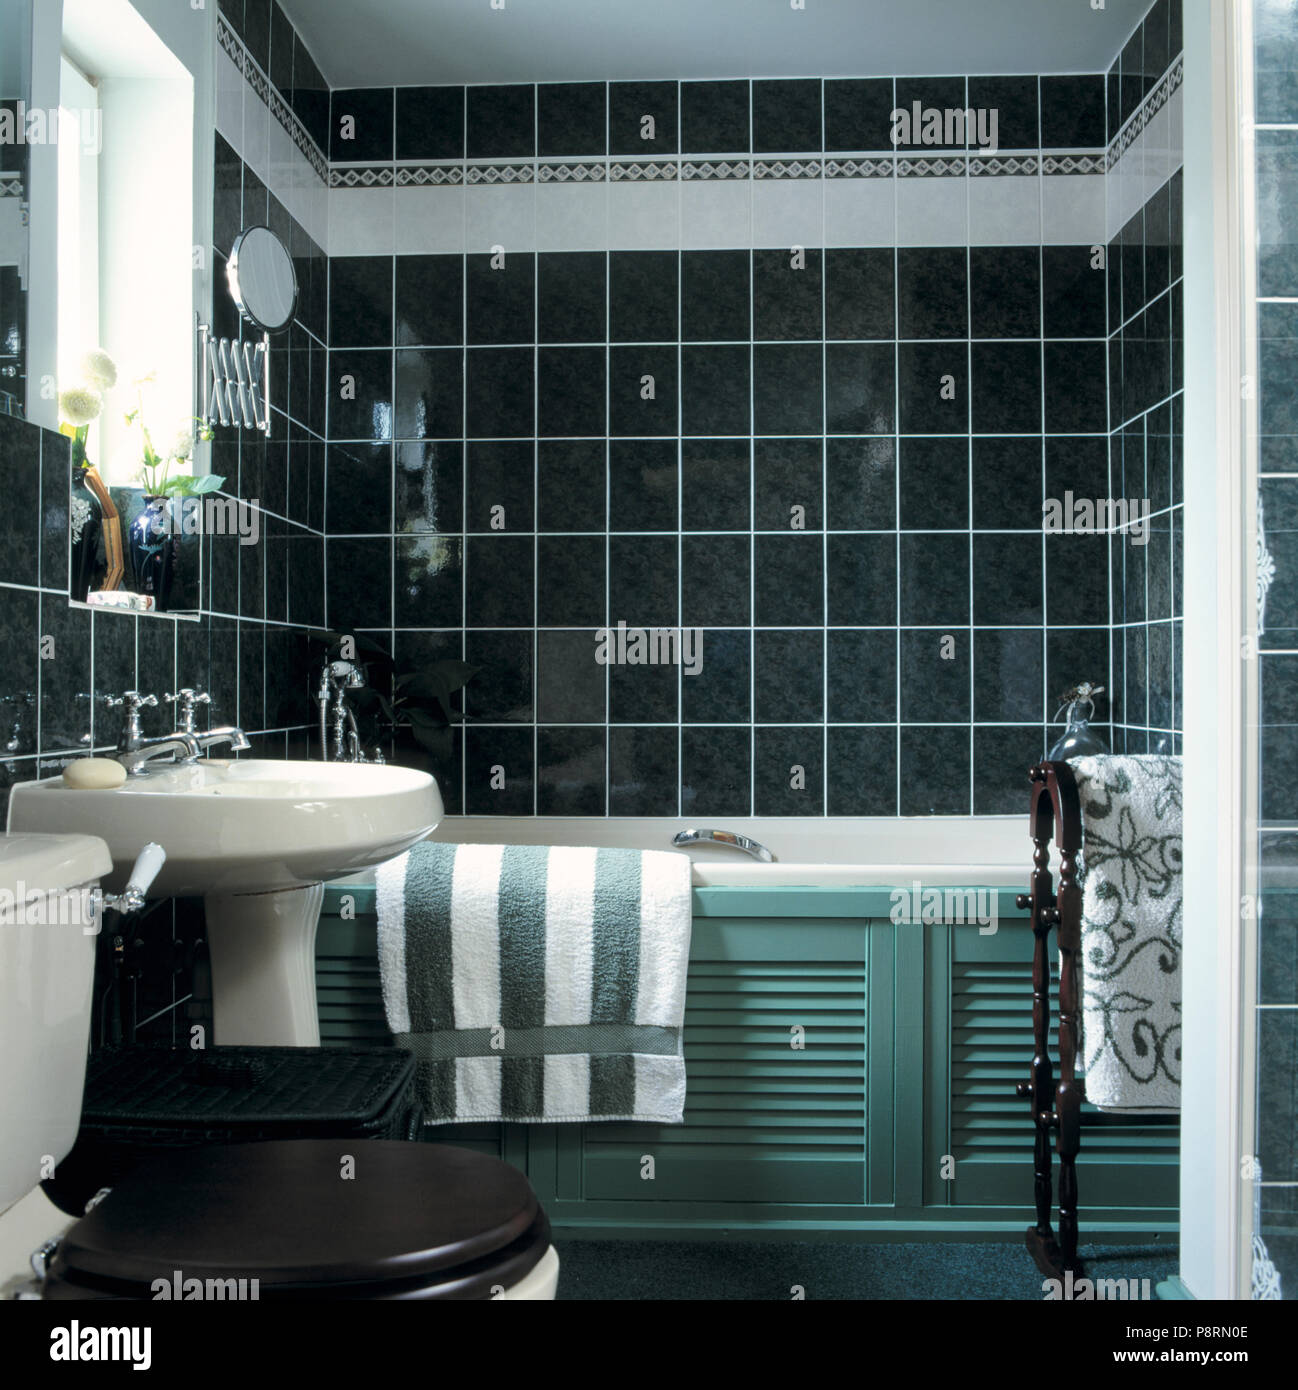 Green+white Striped Towel On Bath With Louvre Panelling In Black Tiled  Bathroom